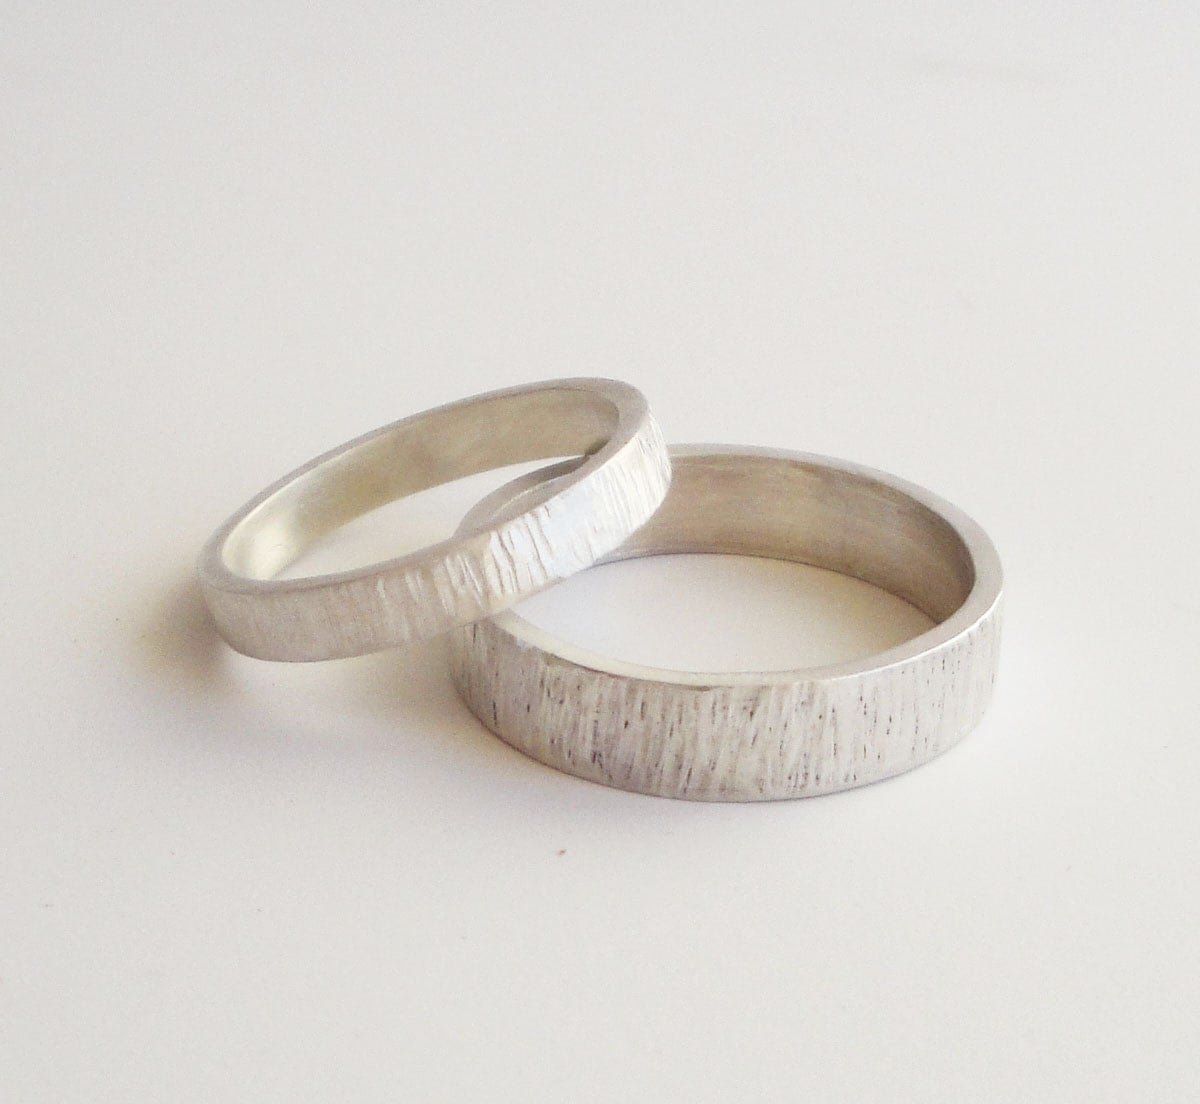 wedding rings handmade hammered sterling silver wedding bands